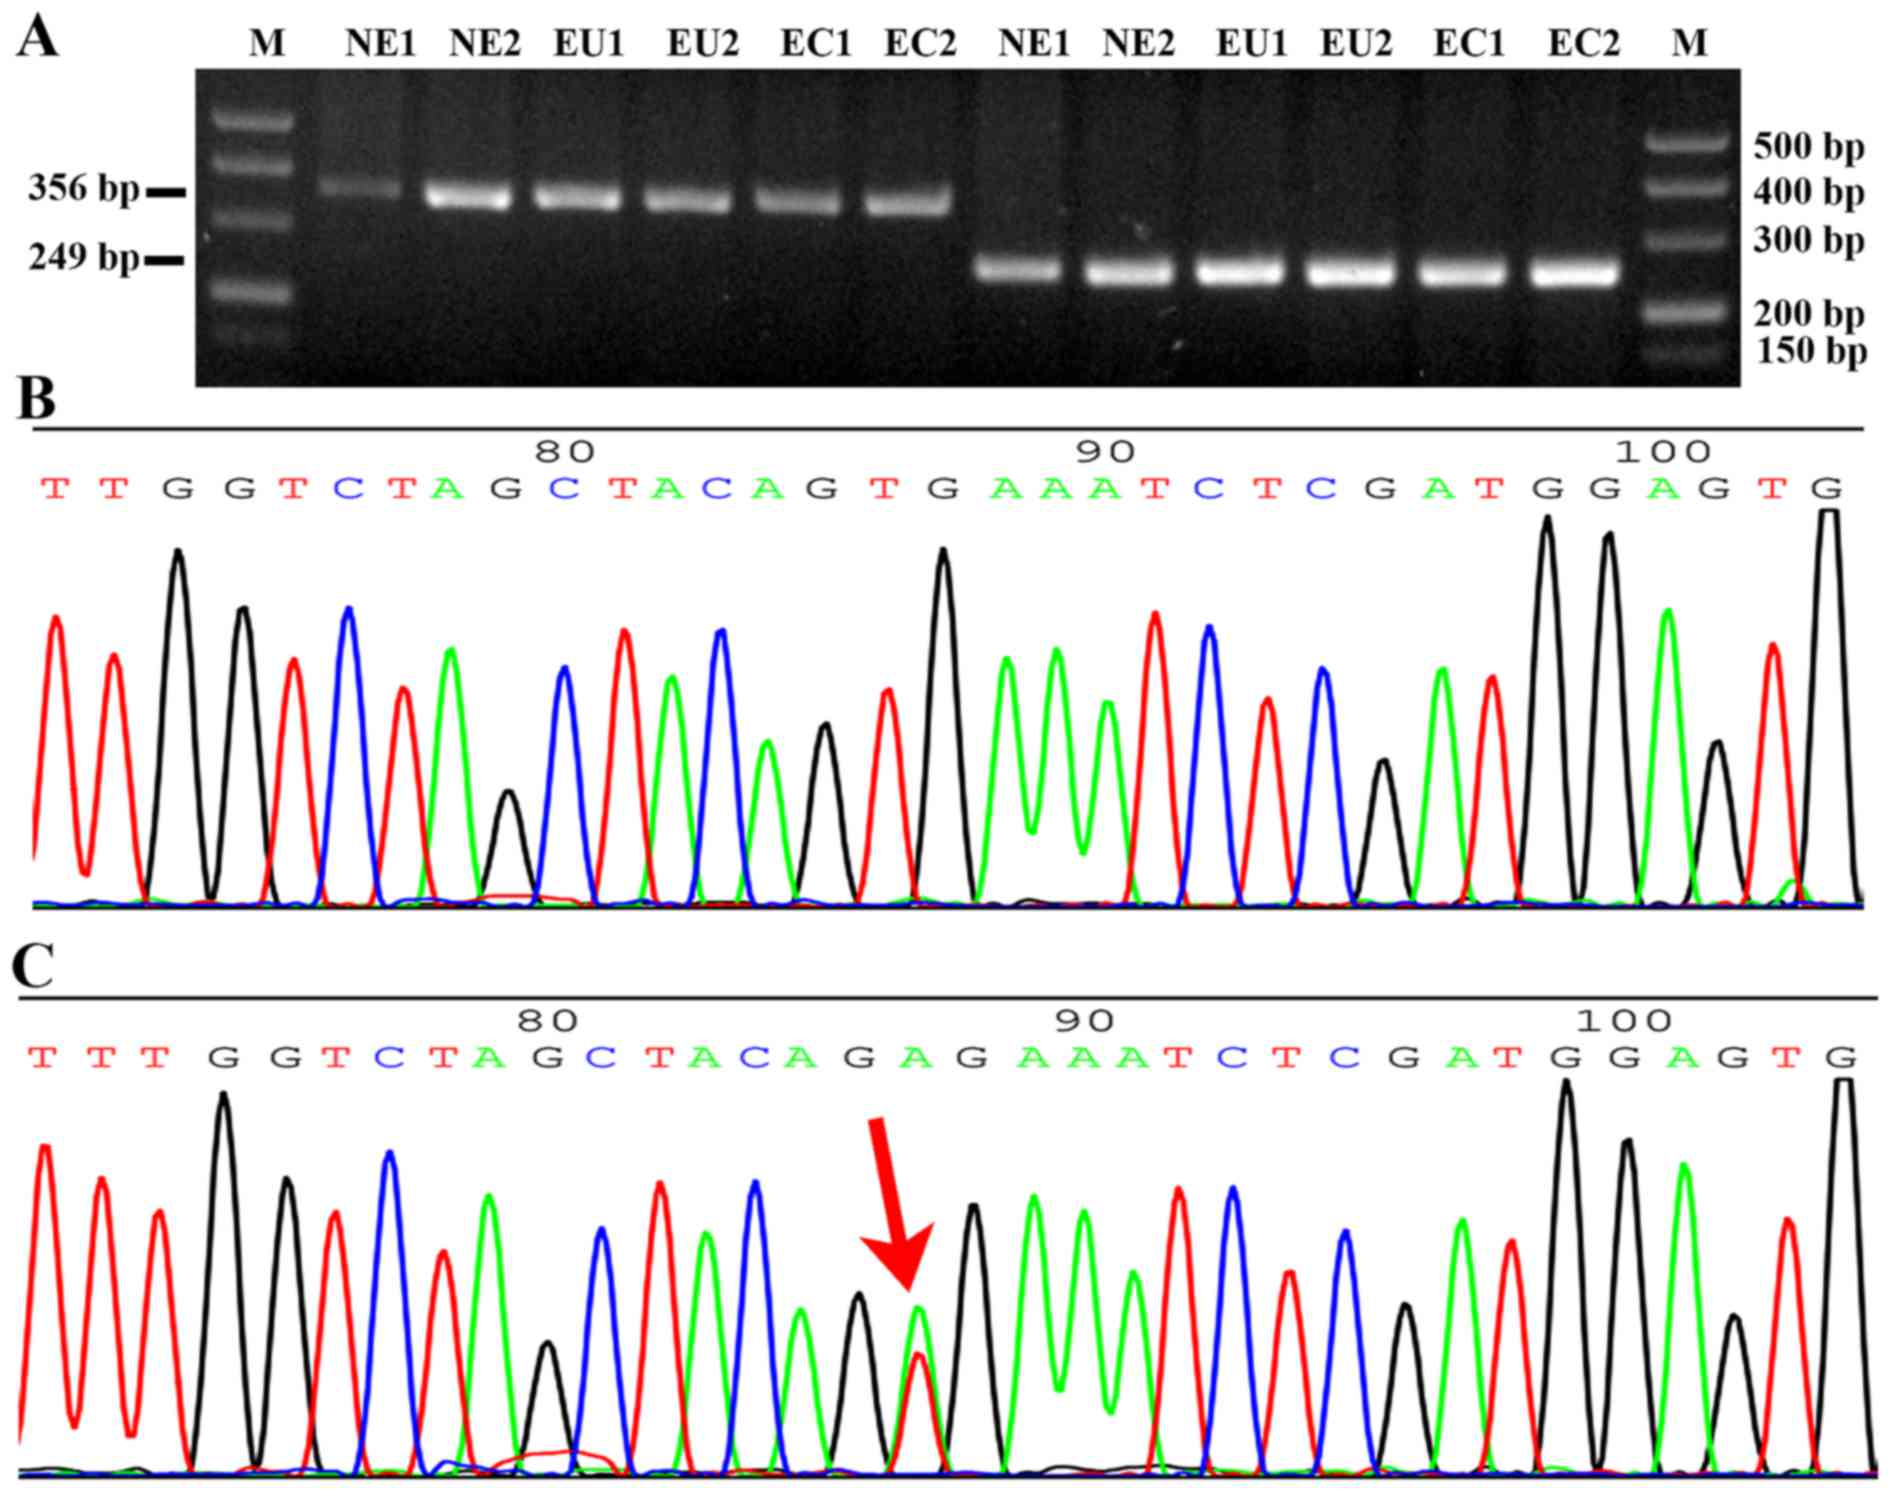 Analysis Of The Oncogene Braf Mutation And The Correlation Of The Expression Of Wild Type Braf And Creb1 In Endometriosis